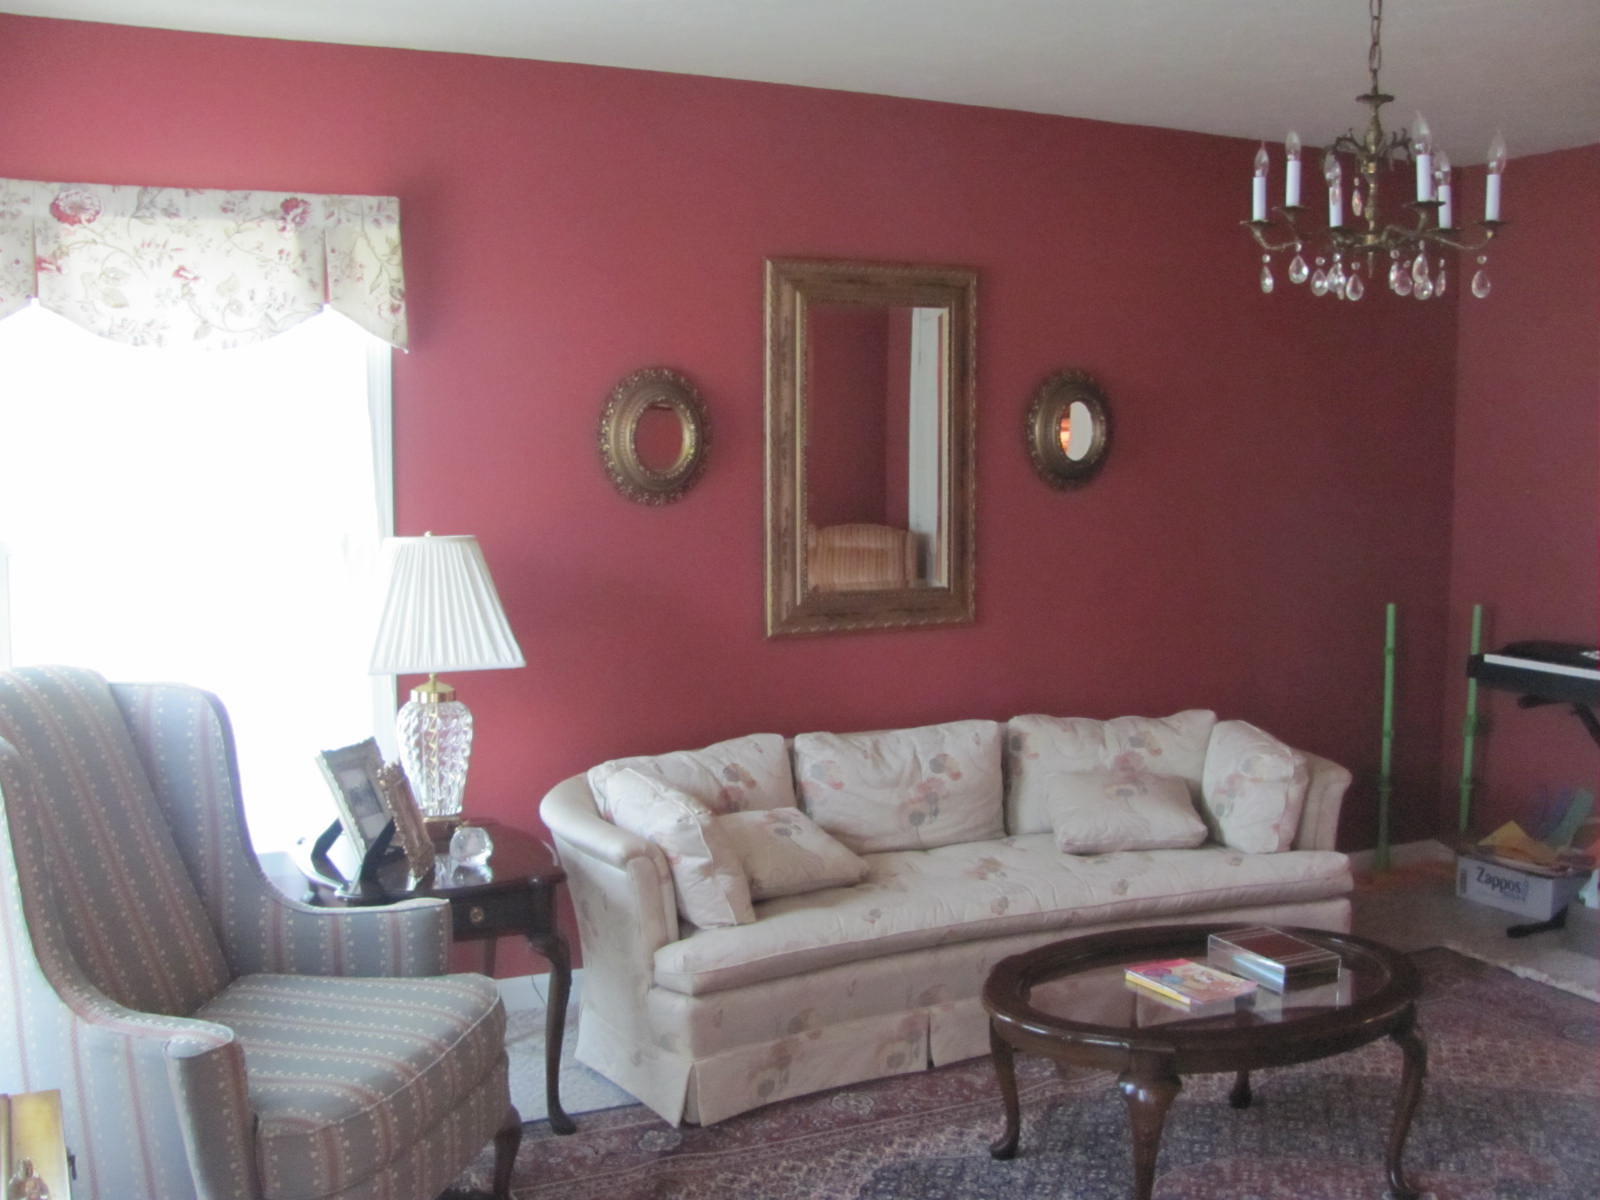 WEAFER DESIGN: Chocolate Brown Living Room with Gold